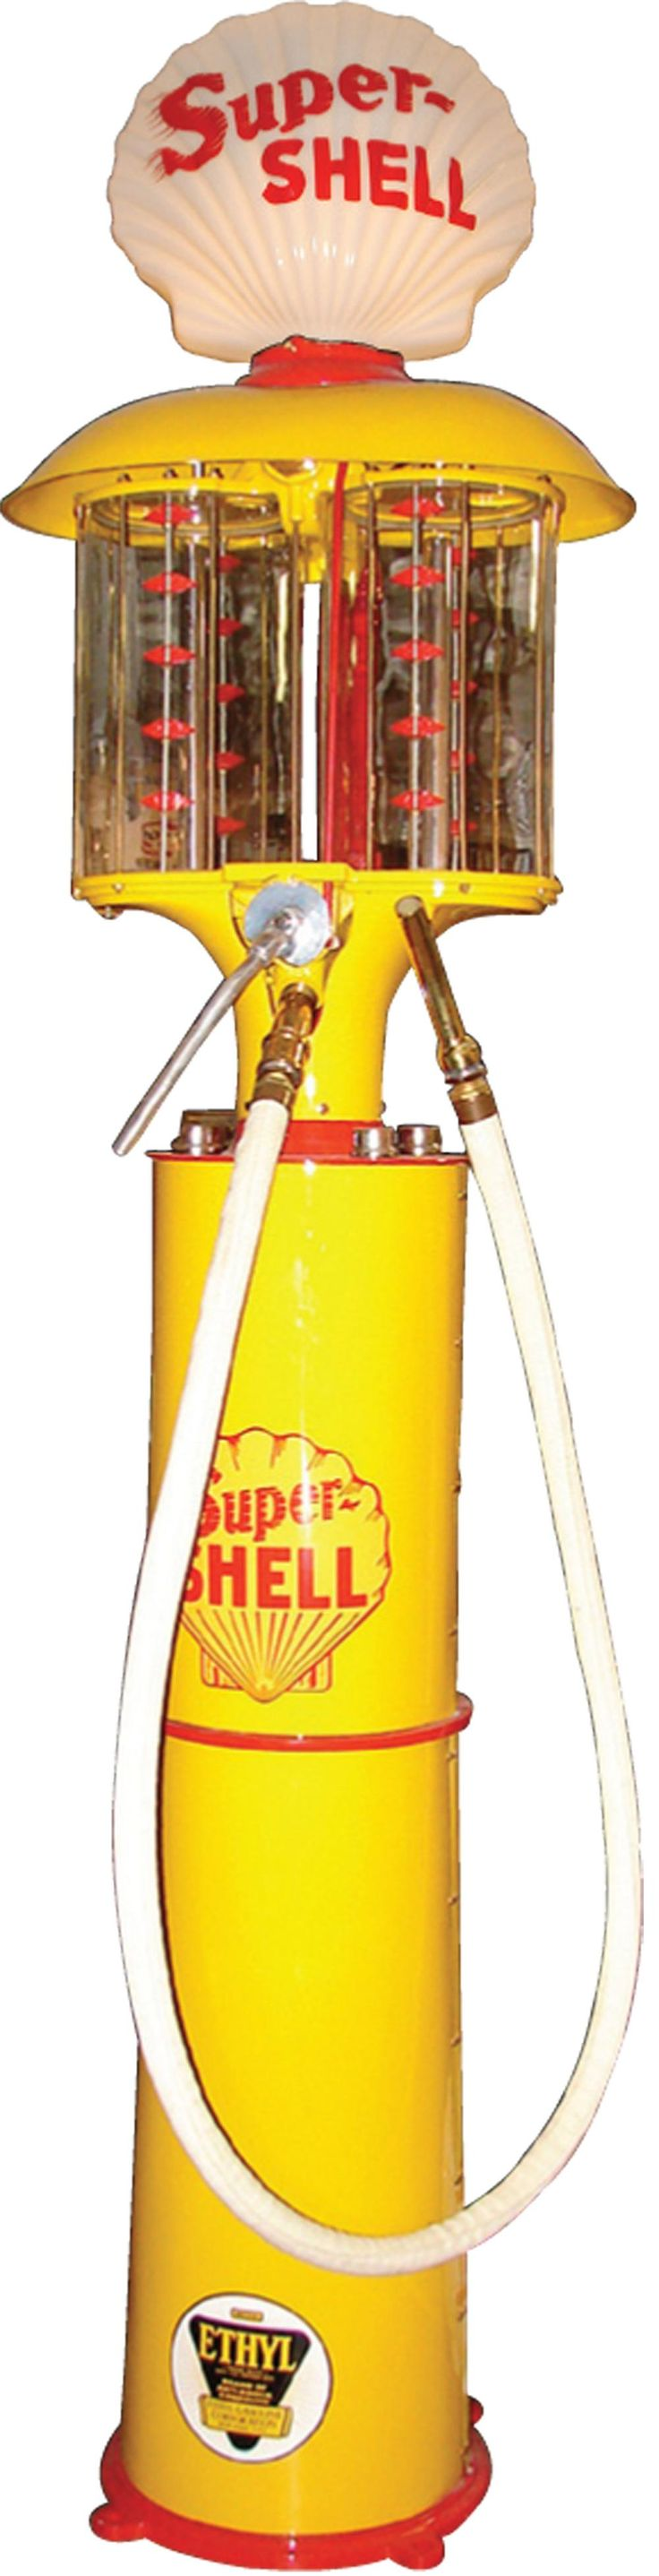 Museum quality 1924 Shell Oil Fleckenstein Duplex visible gas pump. Truly a once in a lifetime opportunity. - Barrett-Jackson Auction Company - World's Greatest Collector Car Auctions